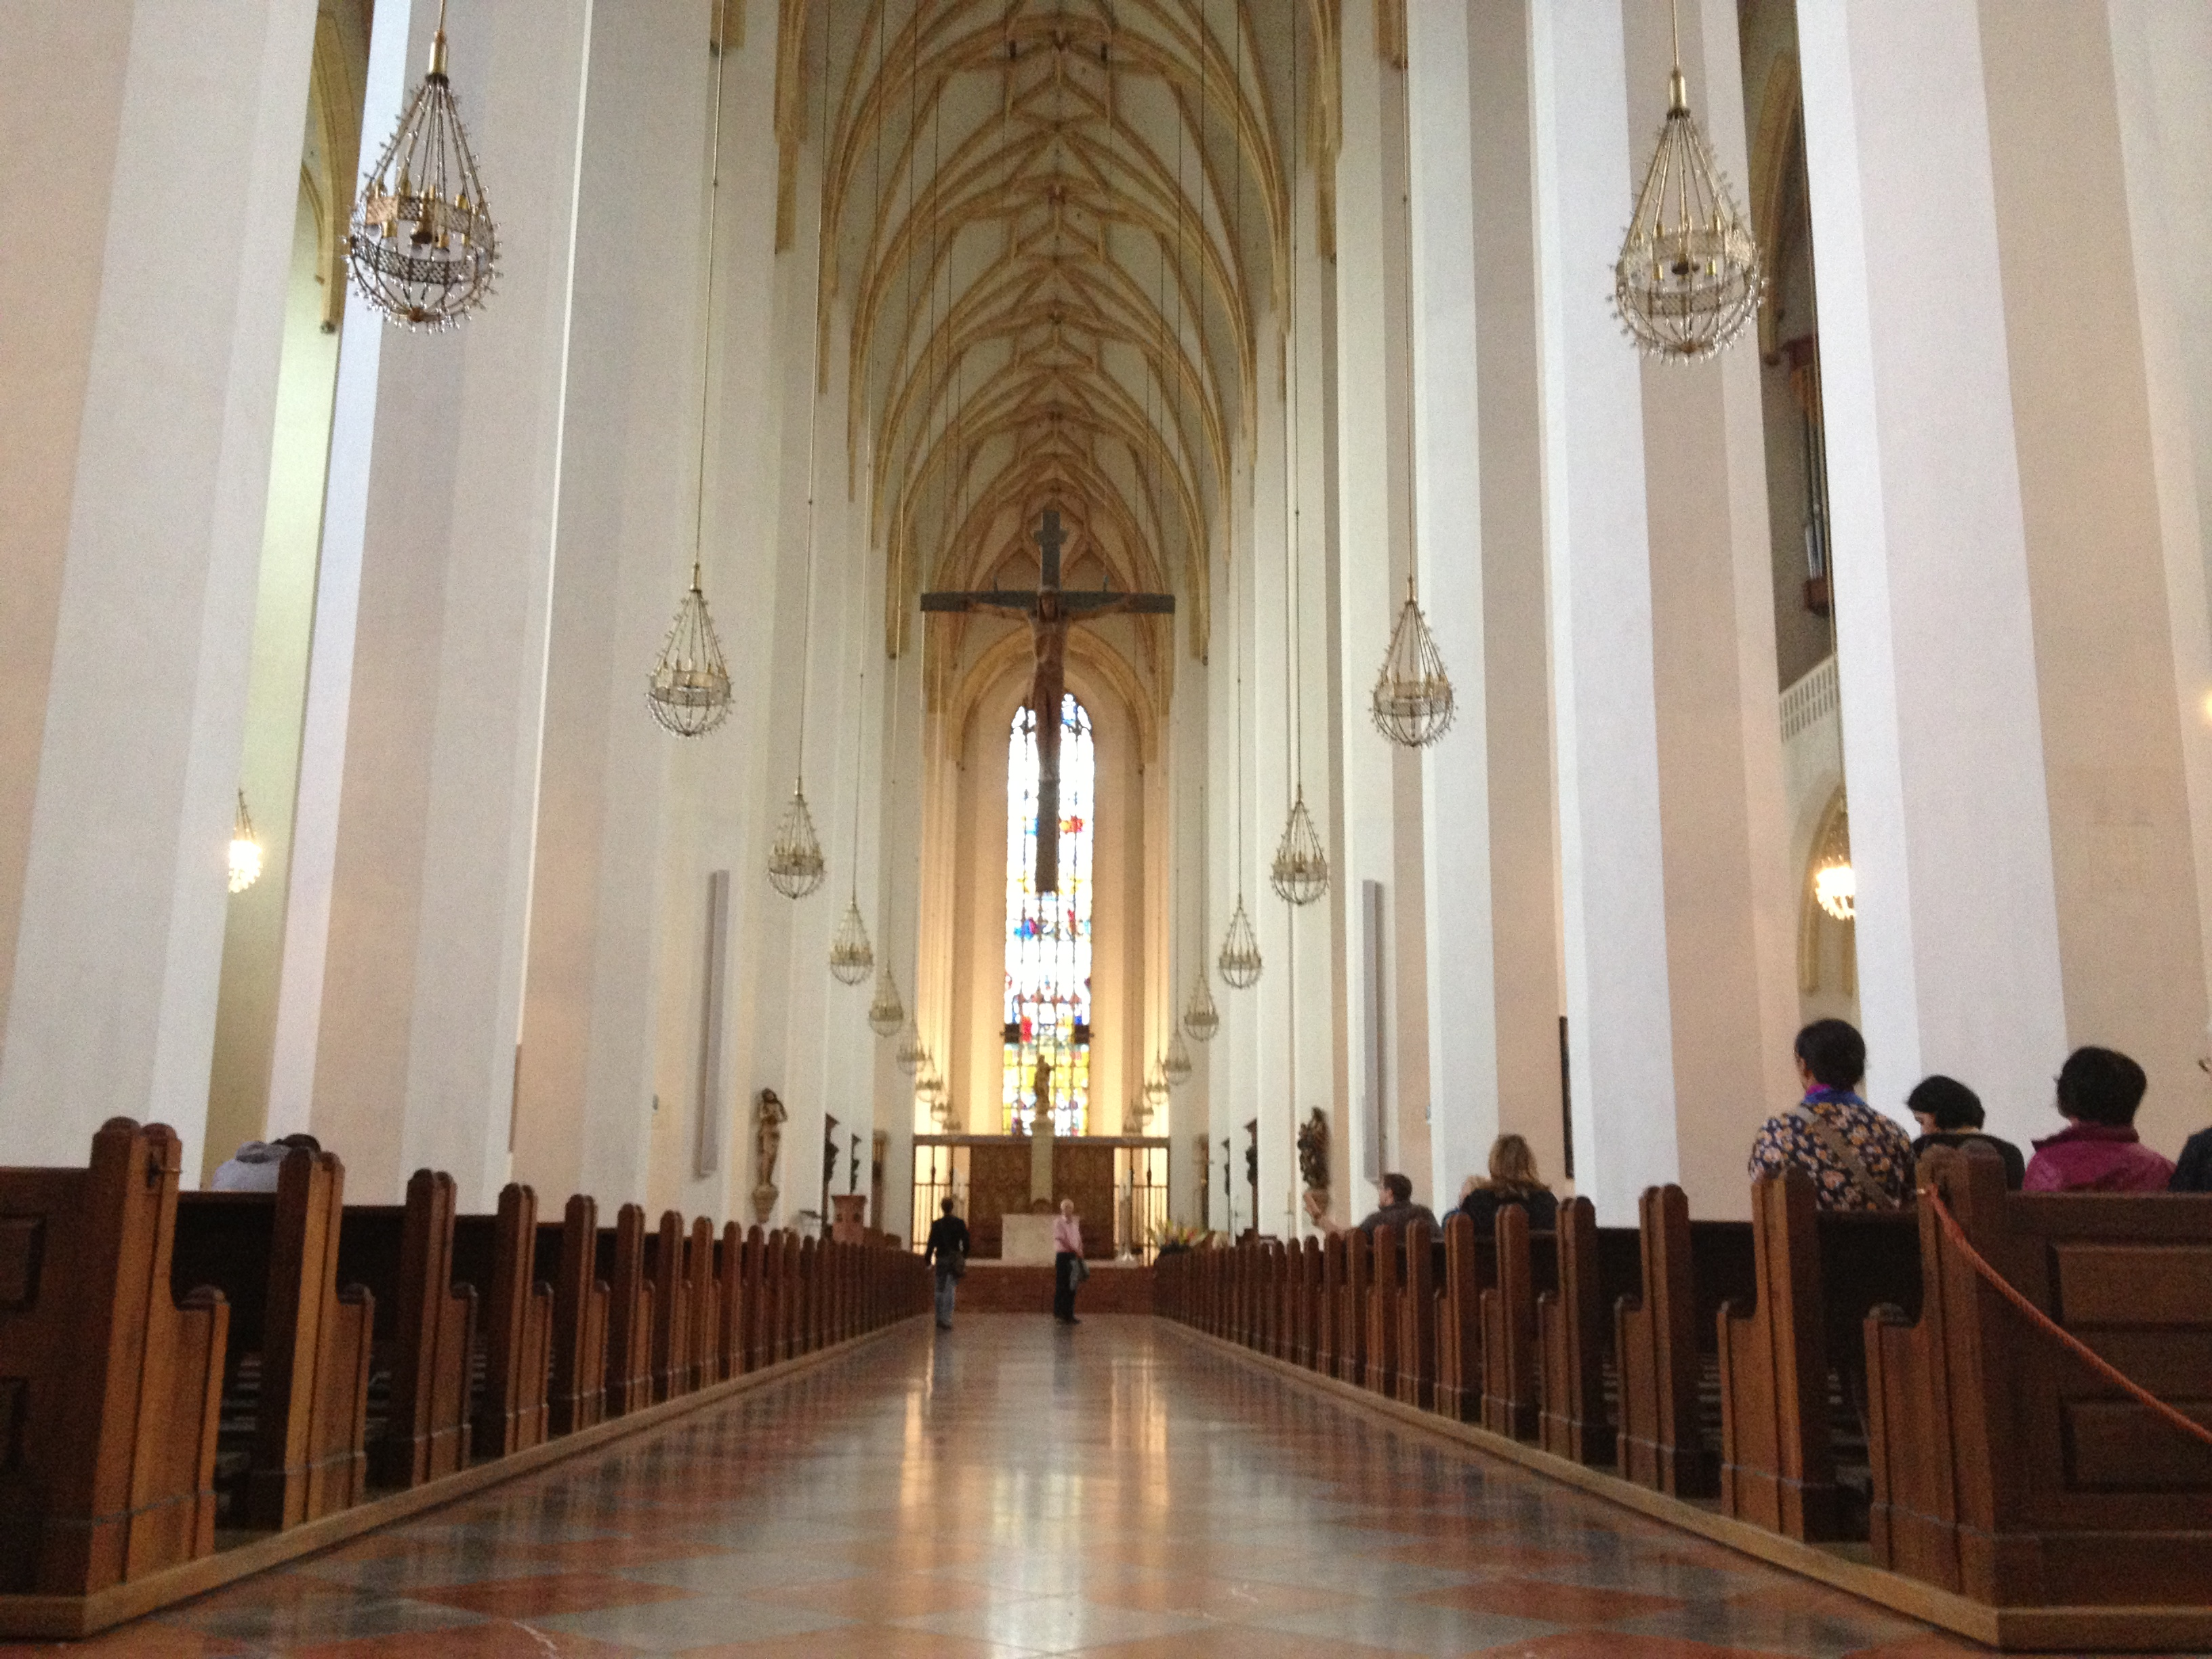 Sunday in Munich – Pastries and Church